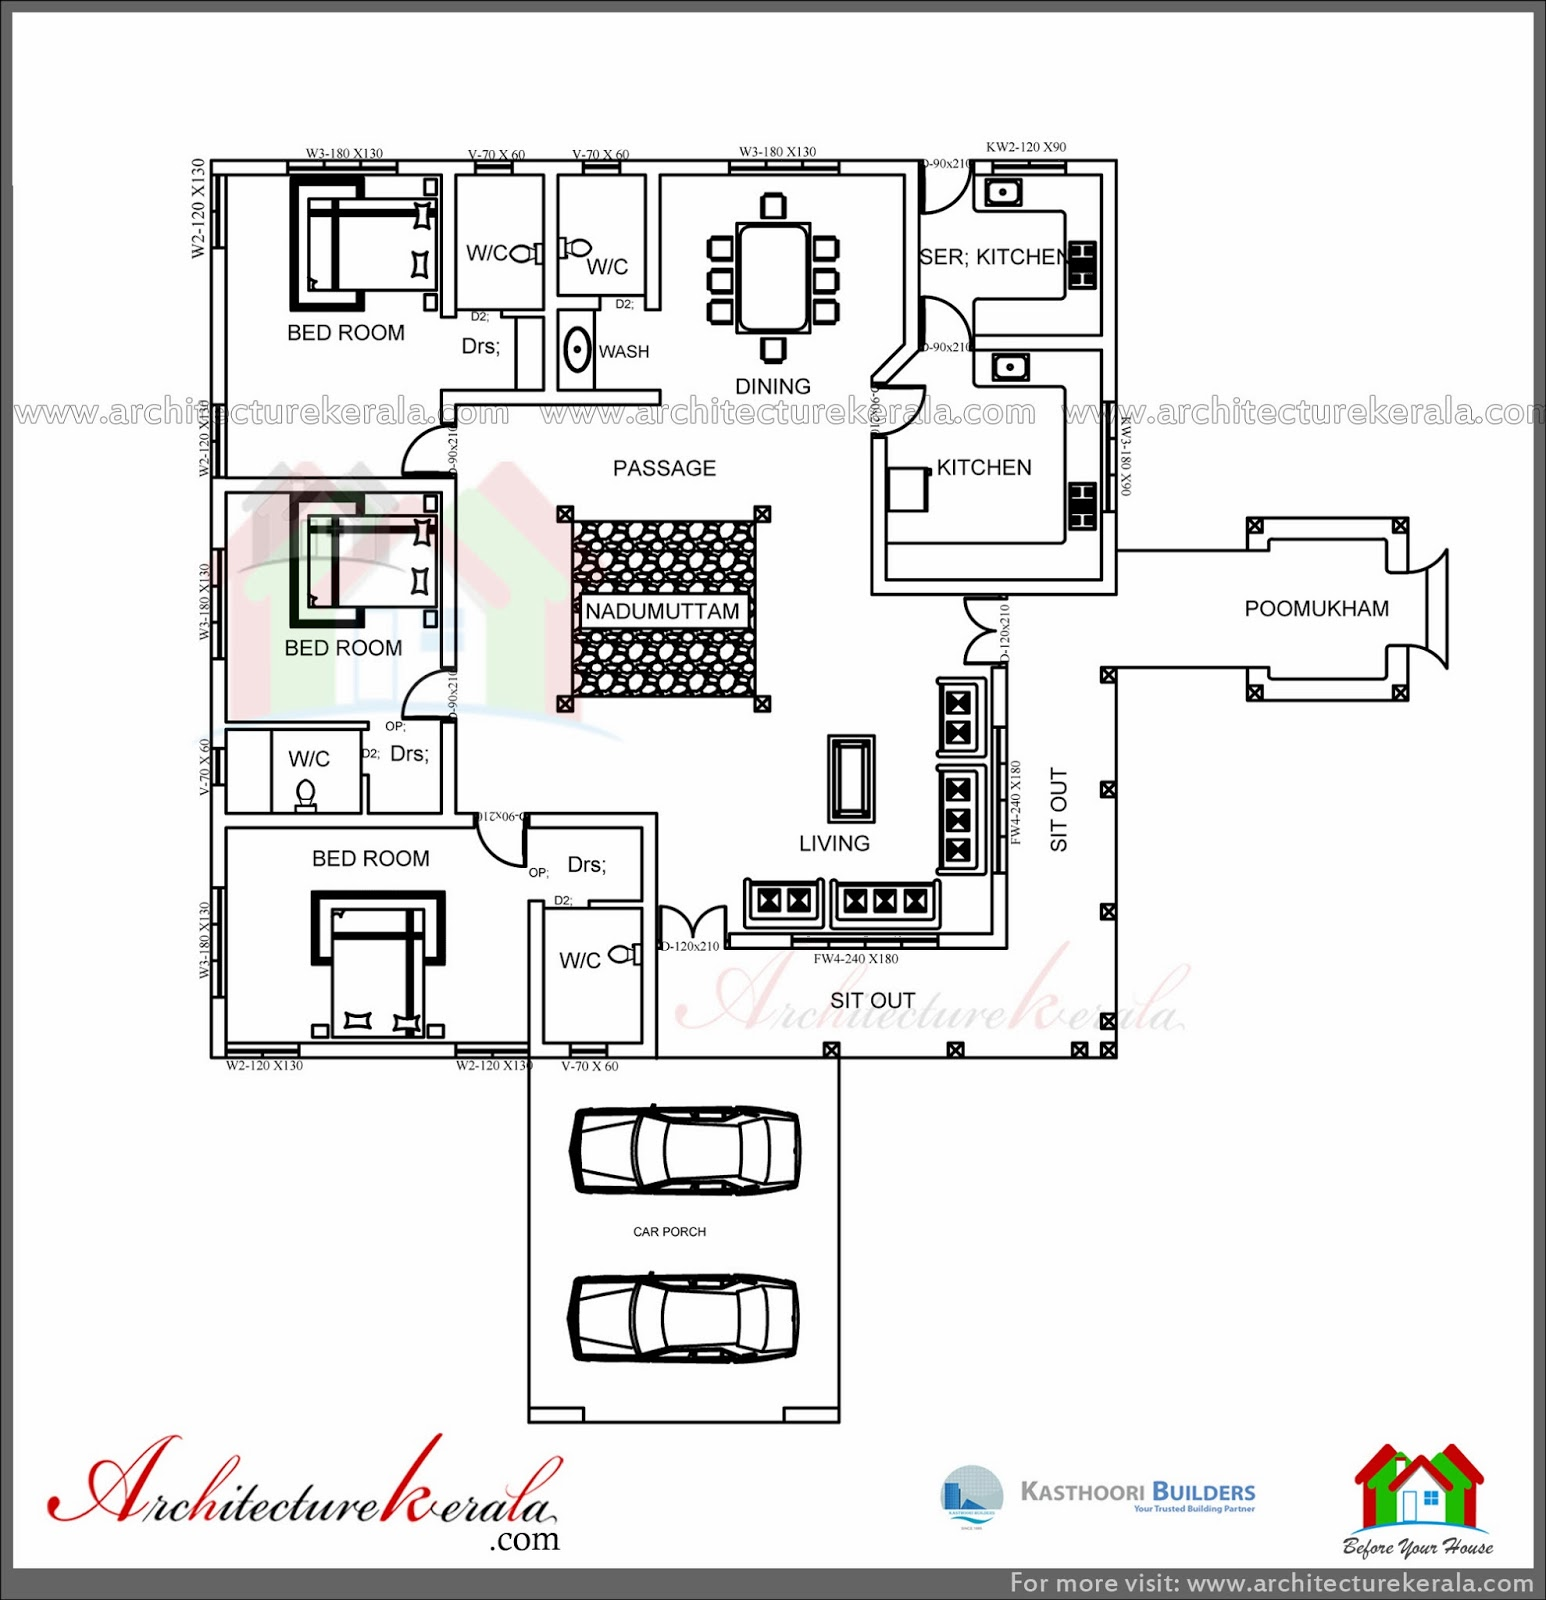 Traditional house plan with nadumuttam and poomukham for 4 bedroom house plans kerala style architect